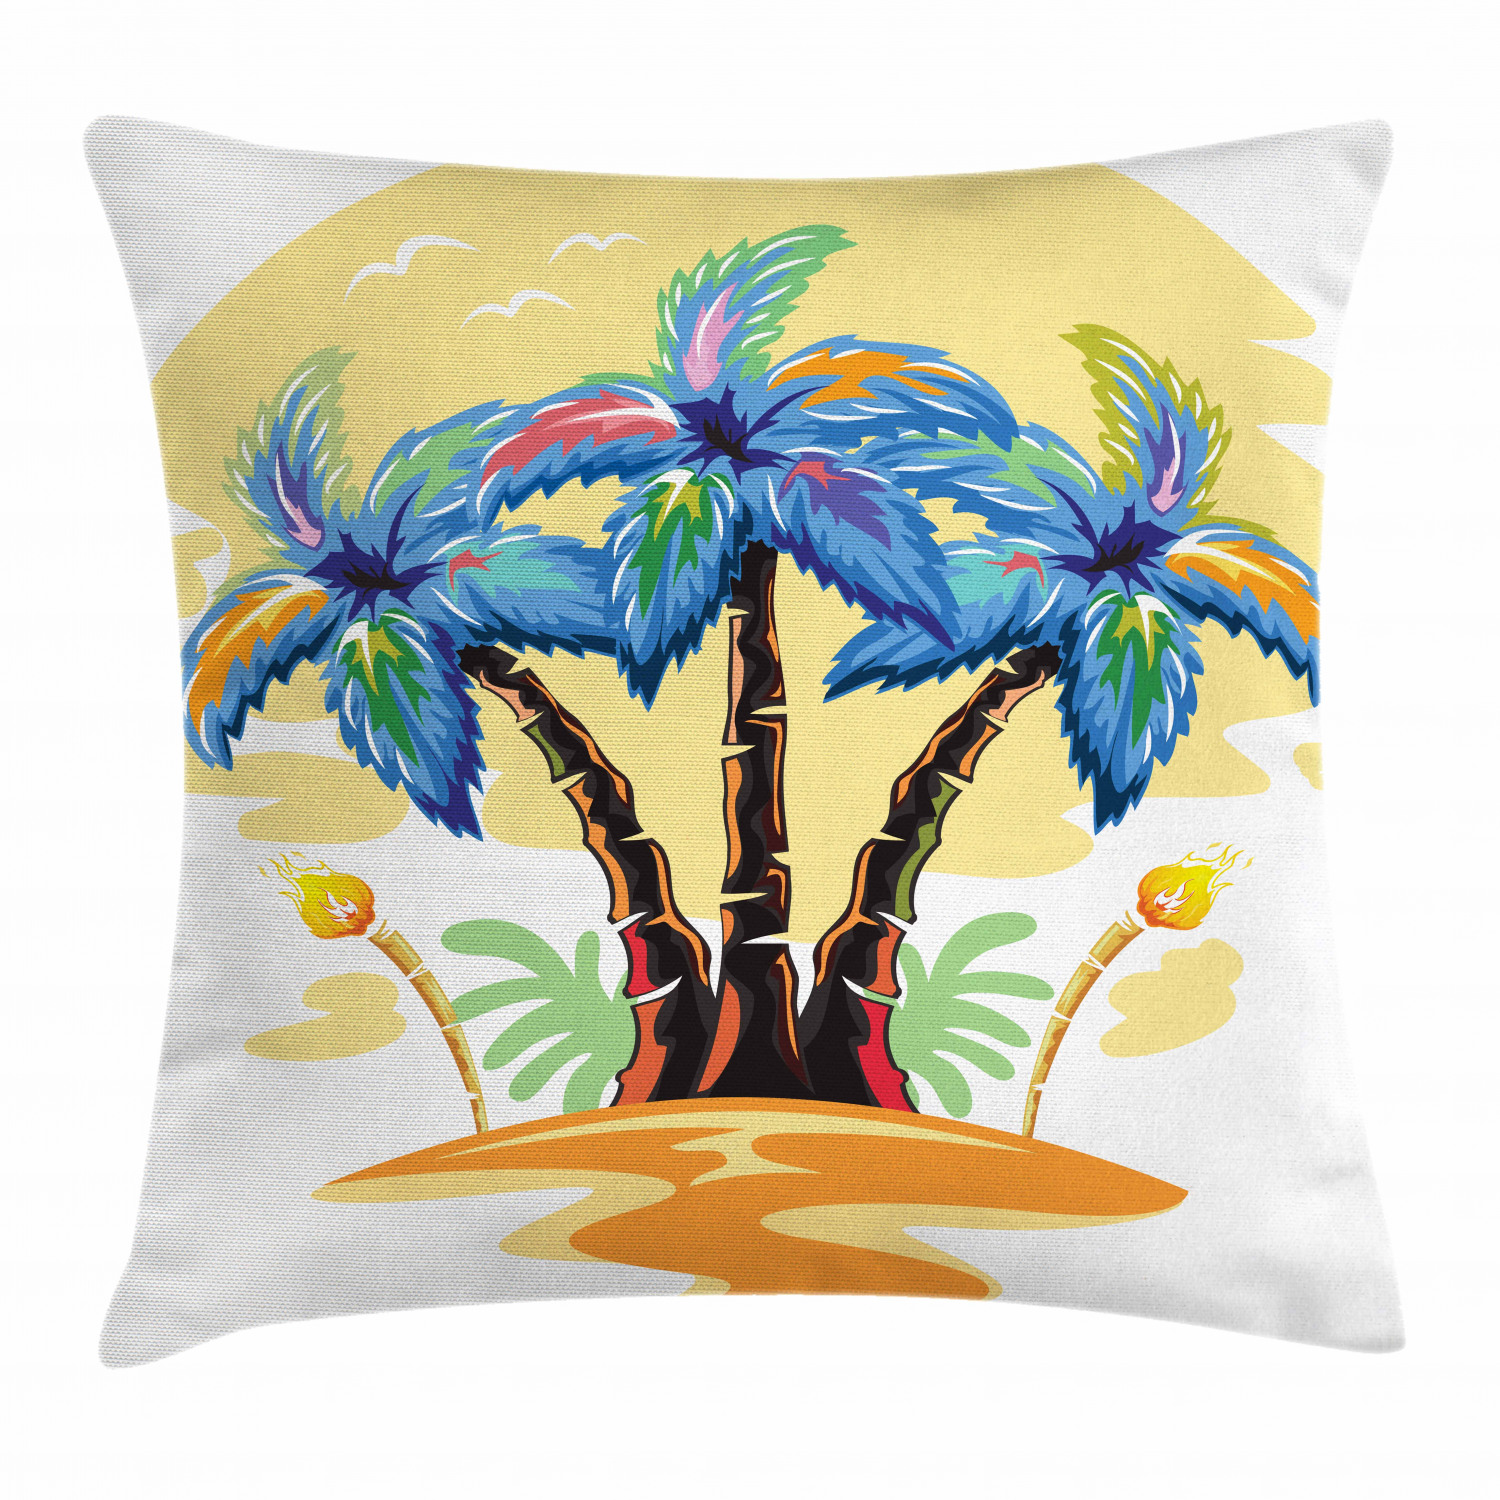 Palm Tree Decor Throw Pillow Cushion Cover, Cartoon Tropical Island with  Hawaiian Palm Trees Torch Seagulls at Sunset, Decorative Square Accent  Pillow ...